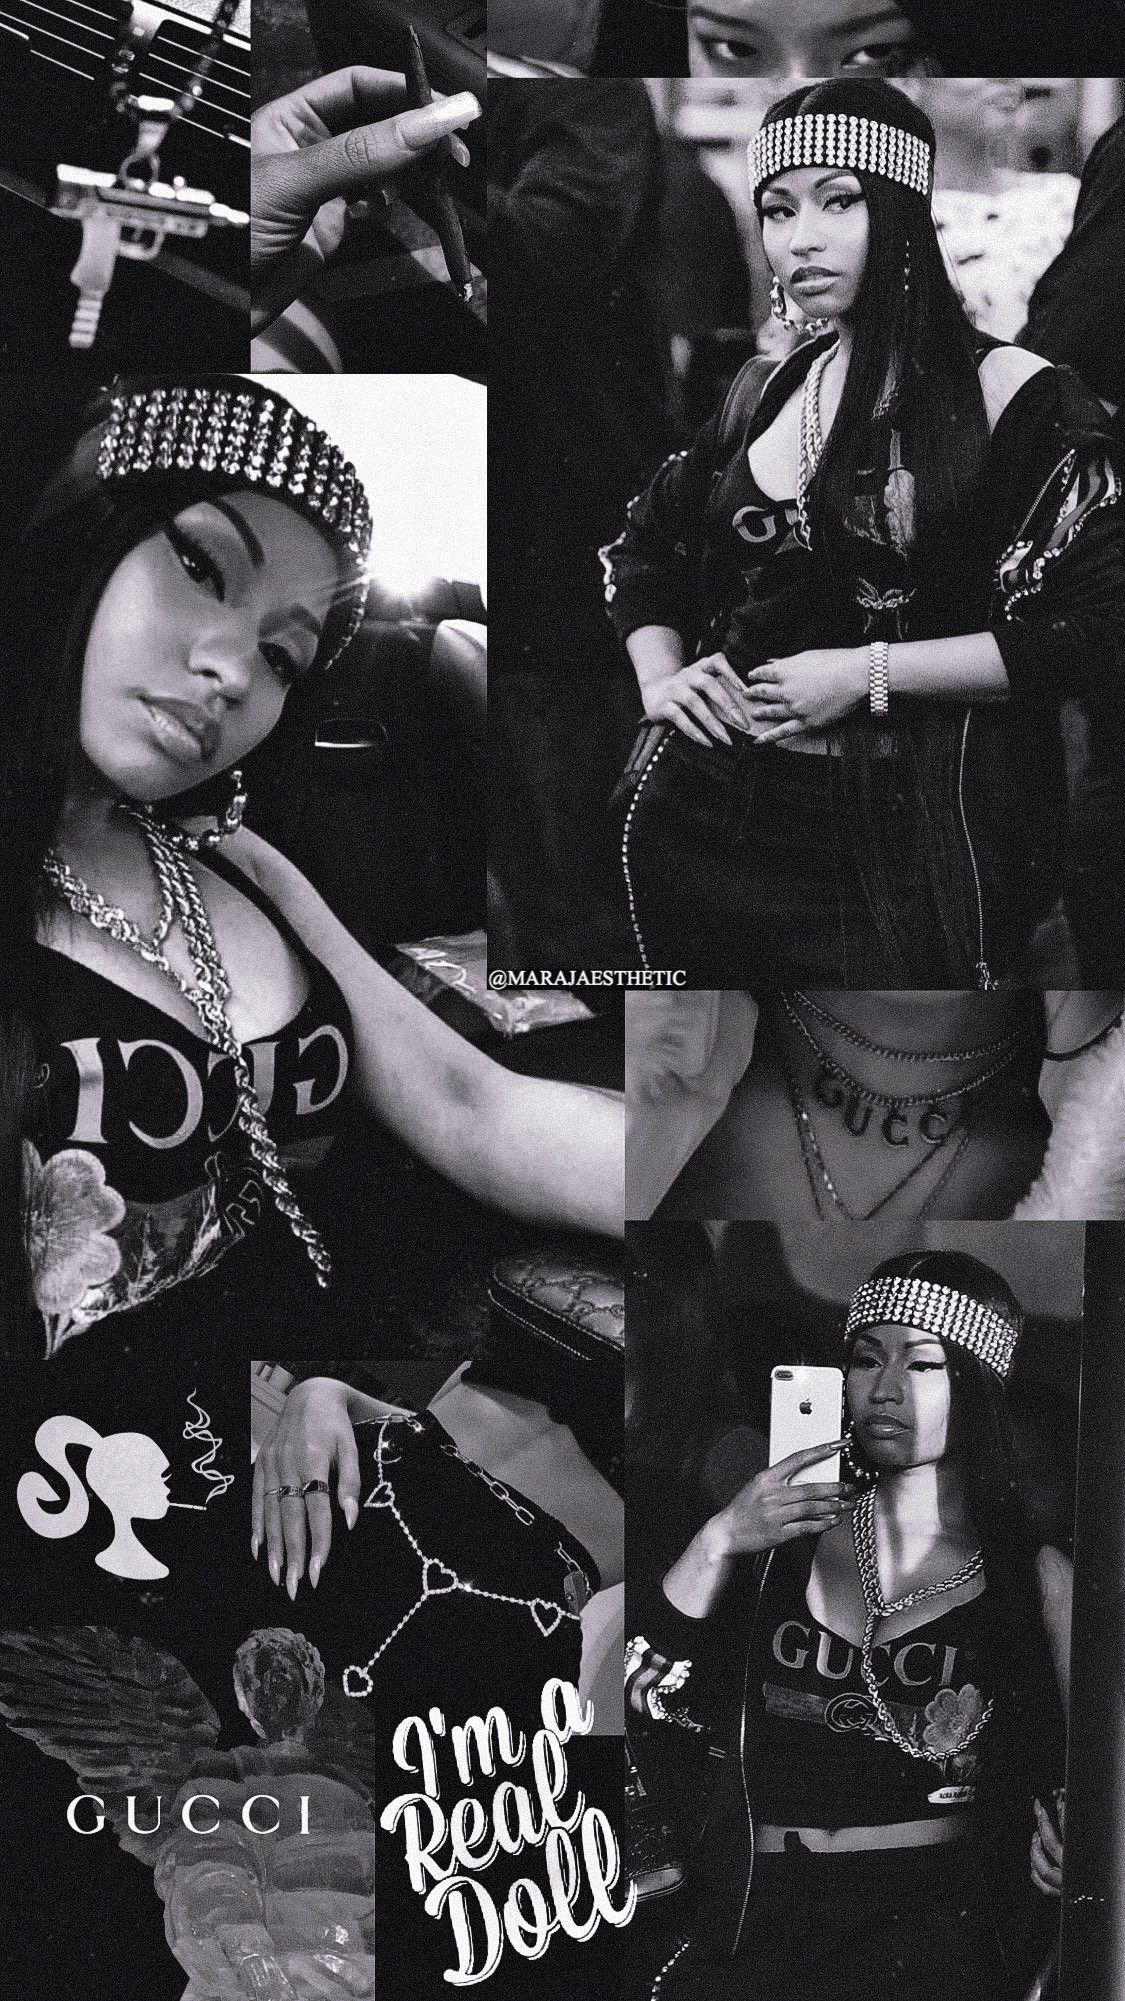 Nicki black and white wallpaper Made by MARAJAESTHETIC on